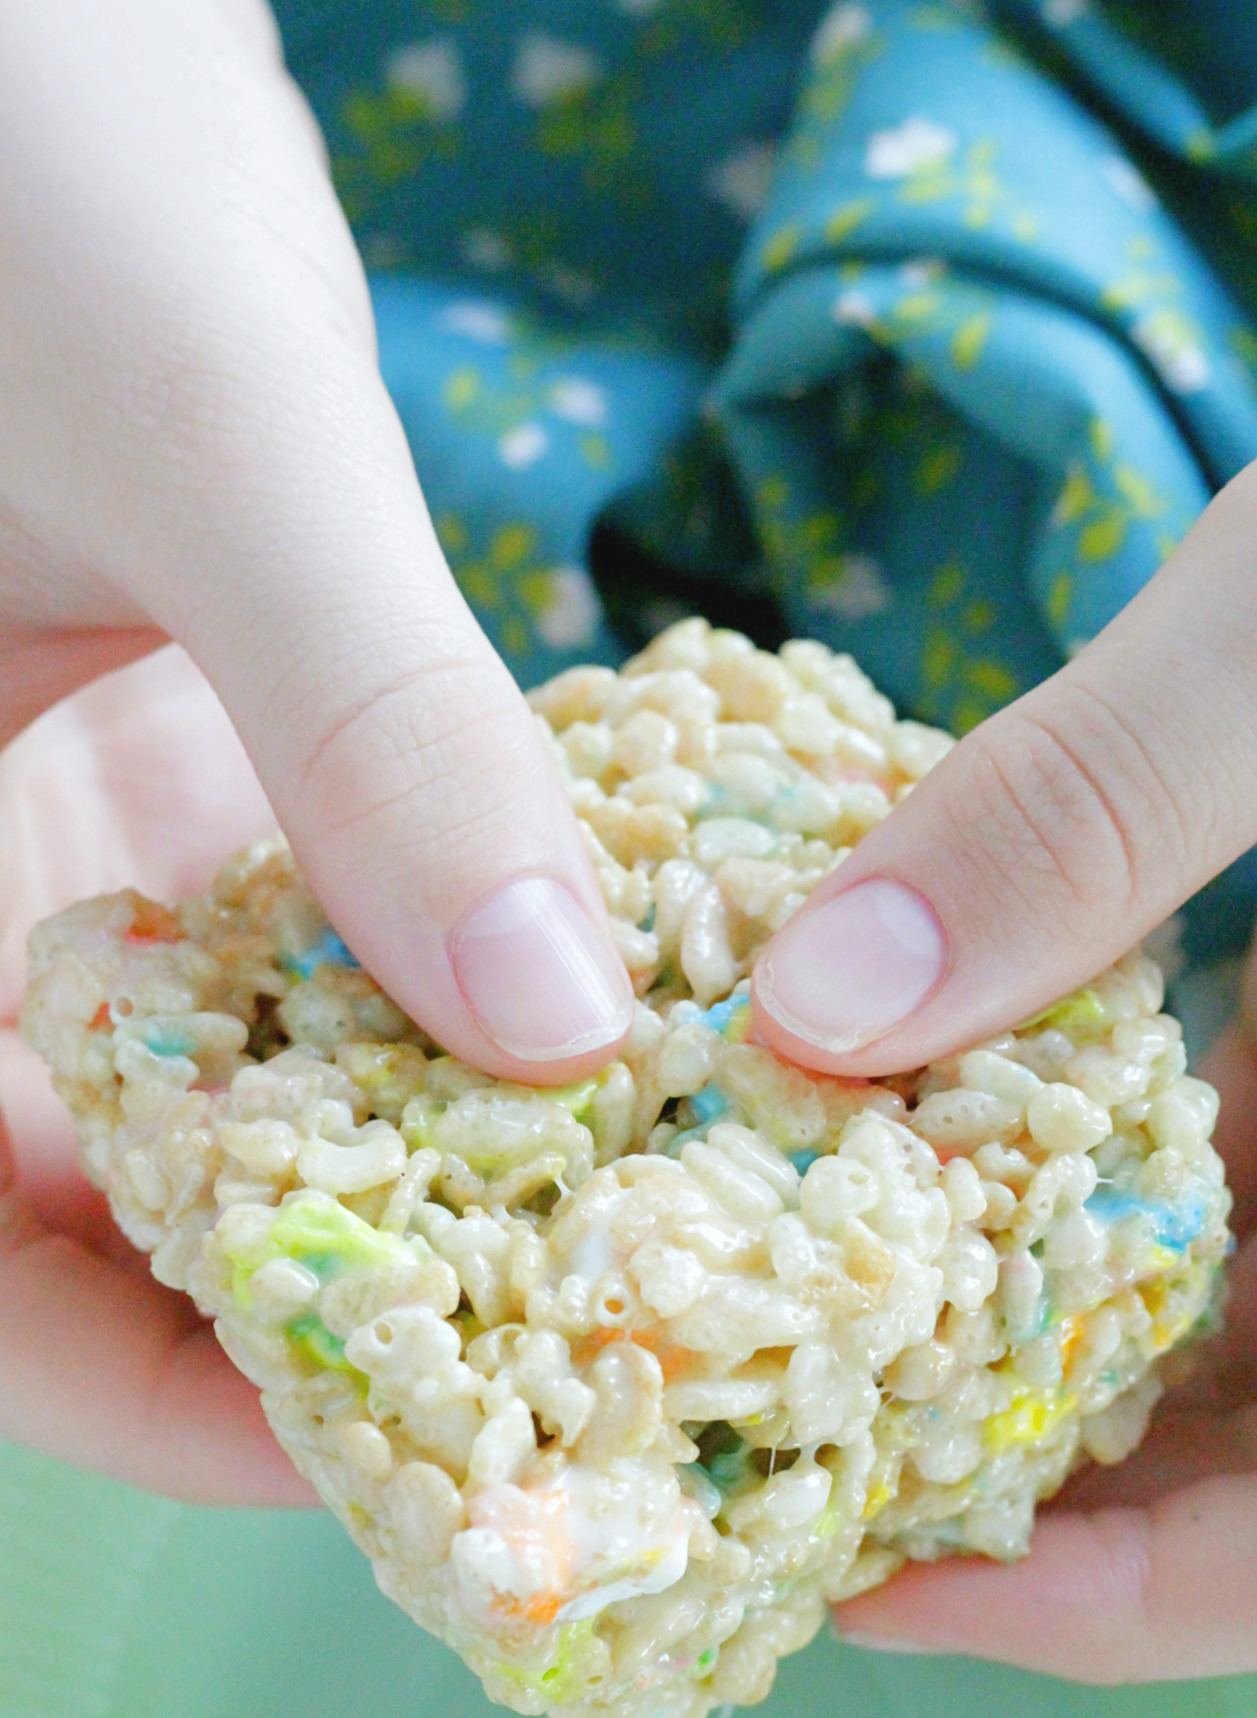 st. patrick's day krispie treat square being held in boy's hands